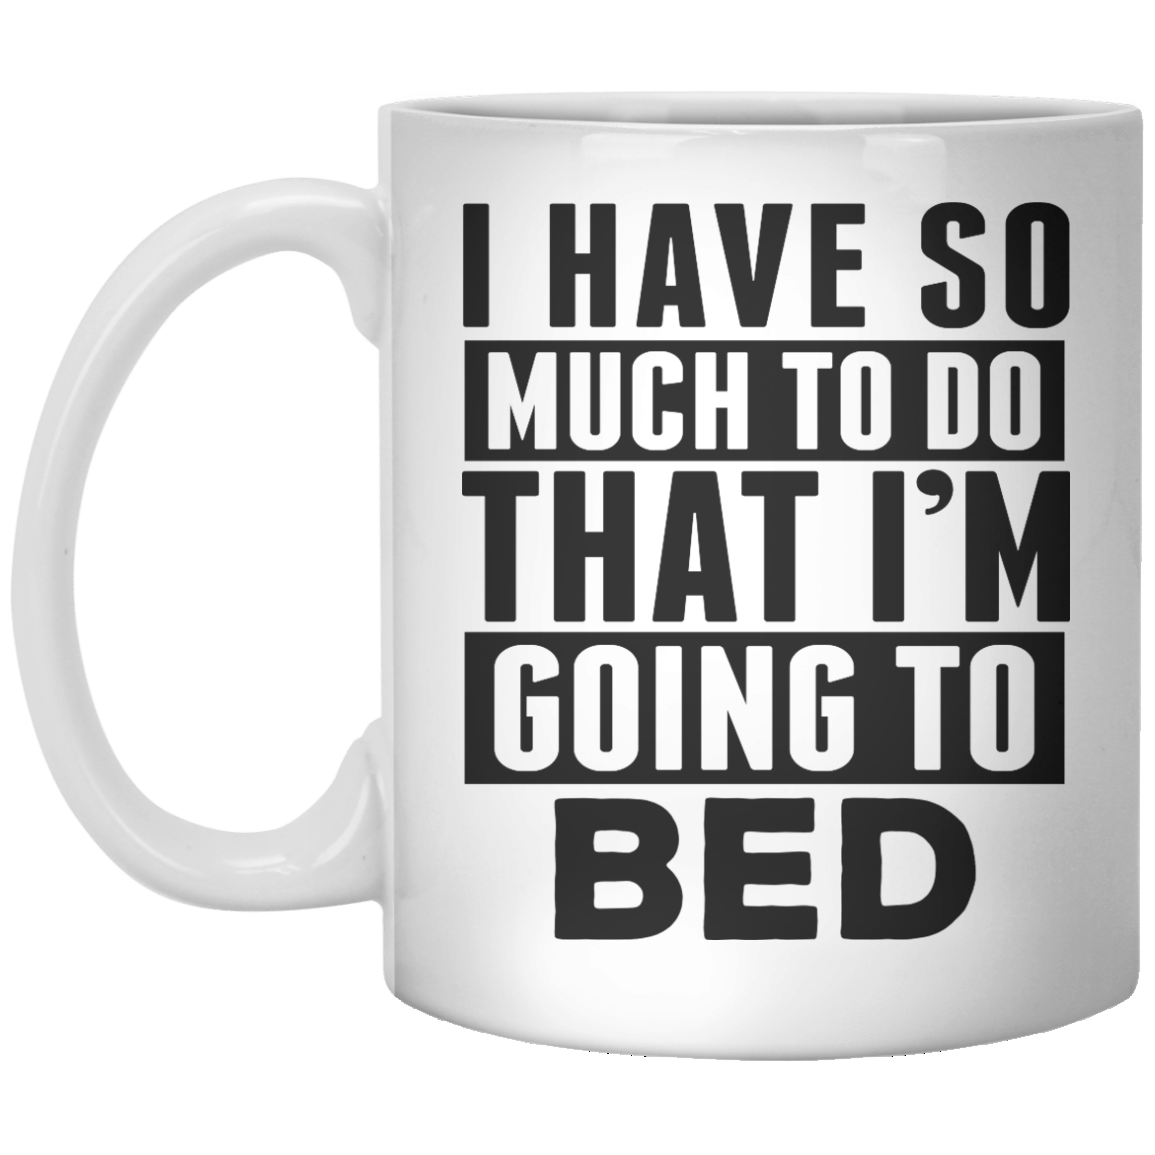 i have so much to do that i'm going bed MUG - Shirtoopia